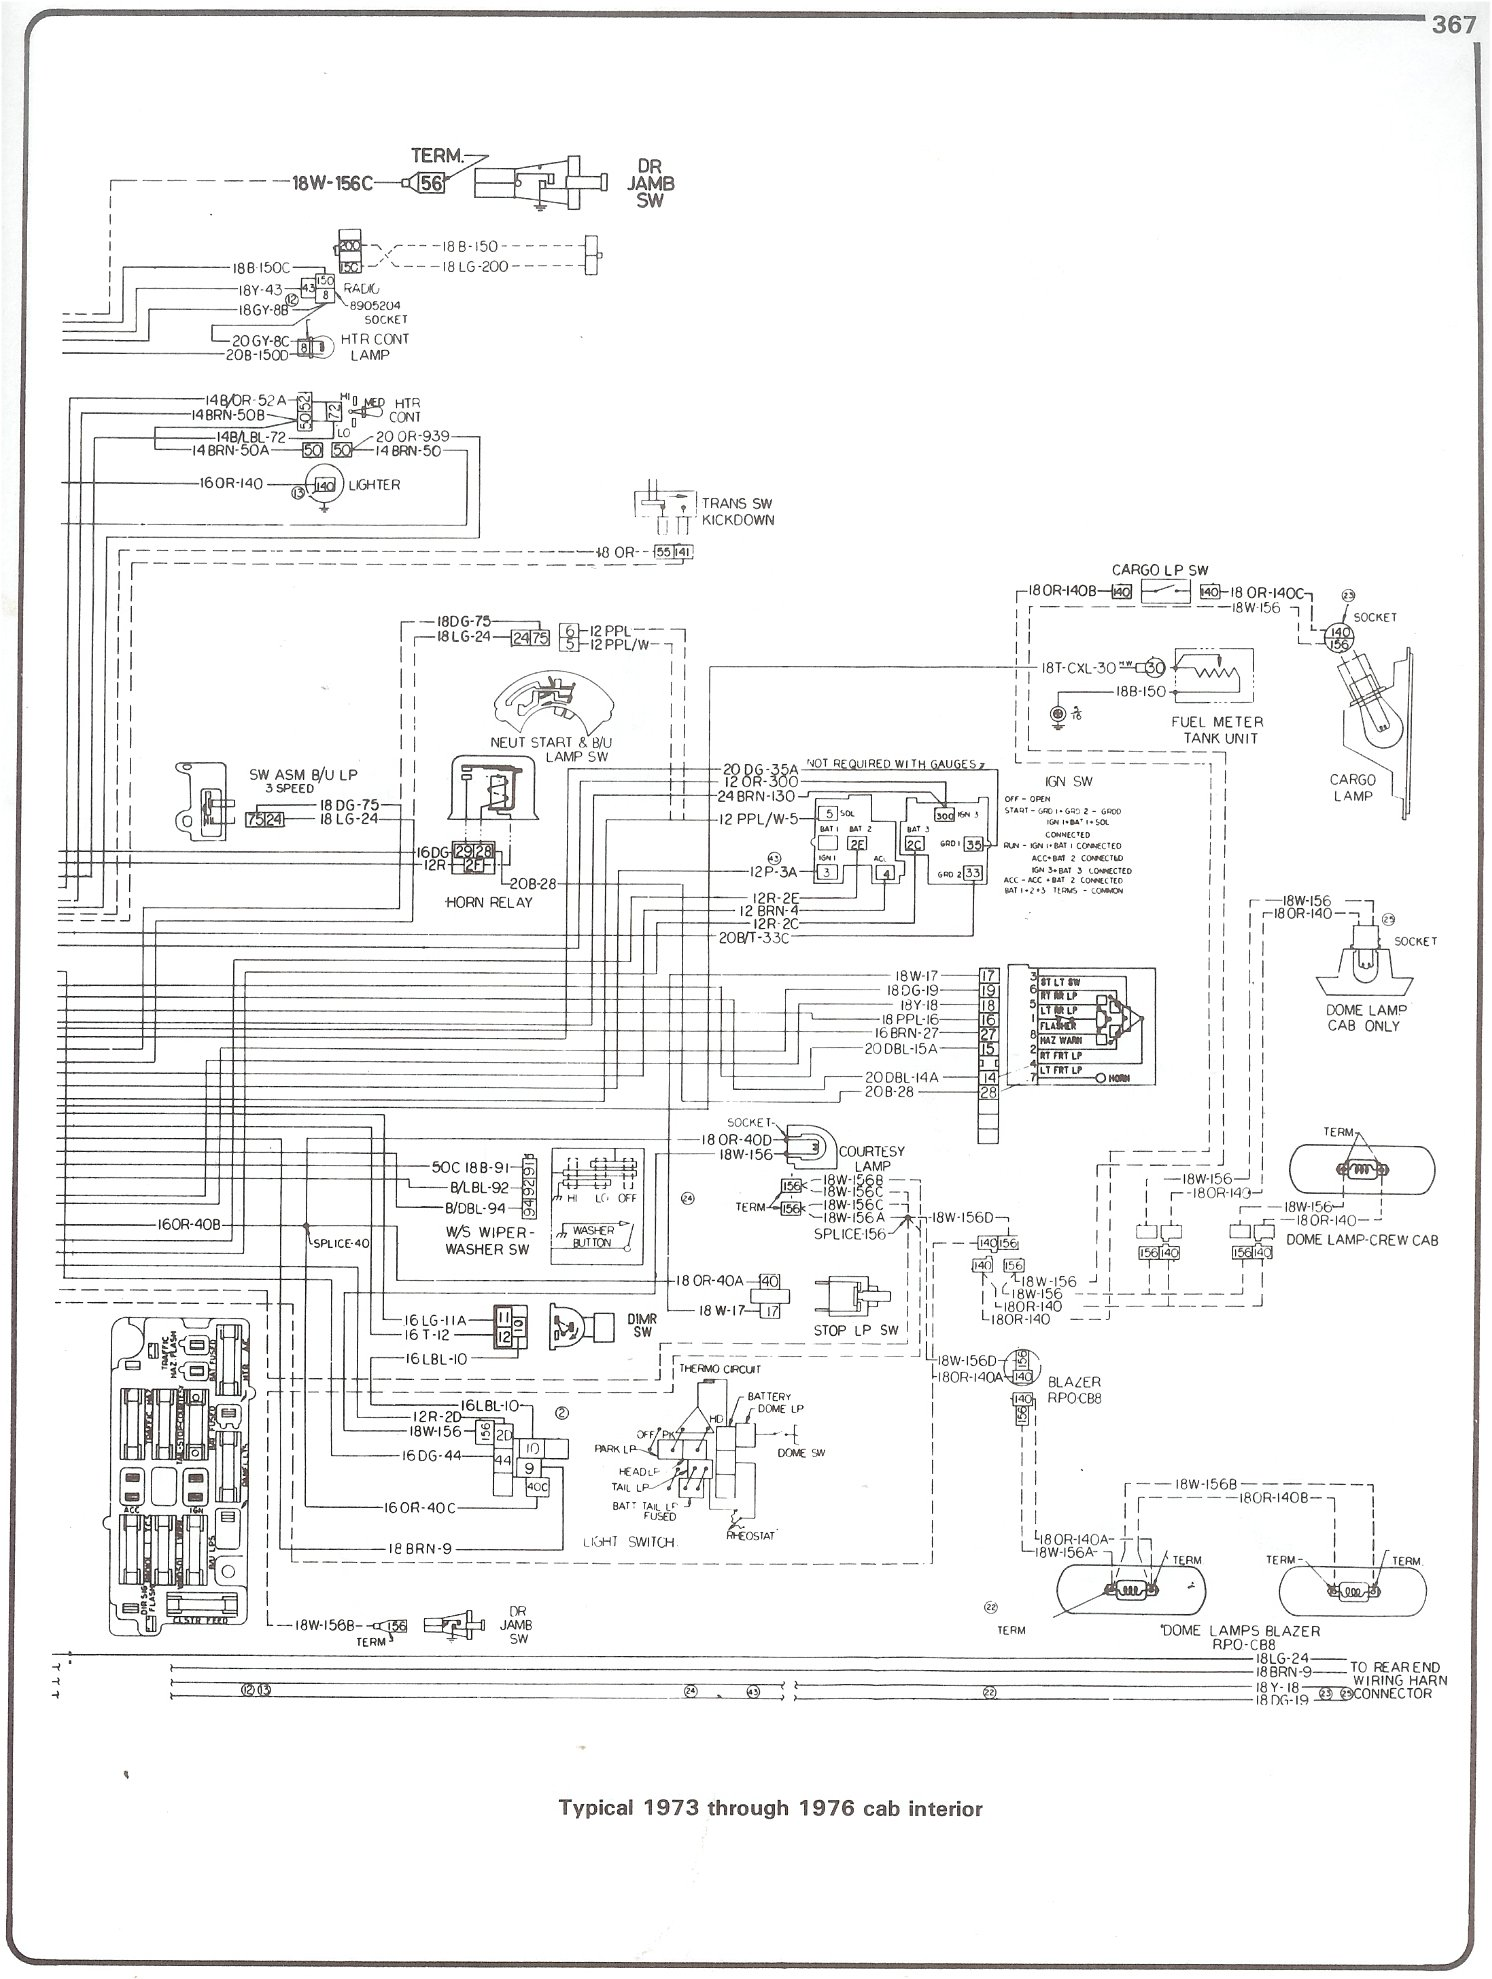 73 76_cab_inter complete 73 87 wiring diagrams Diagram Panel Wiring Cessnainstrument at eliteediting.co